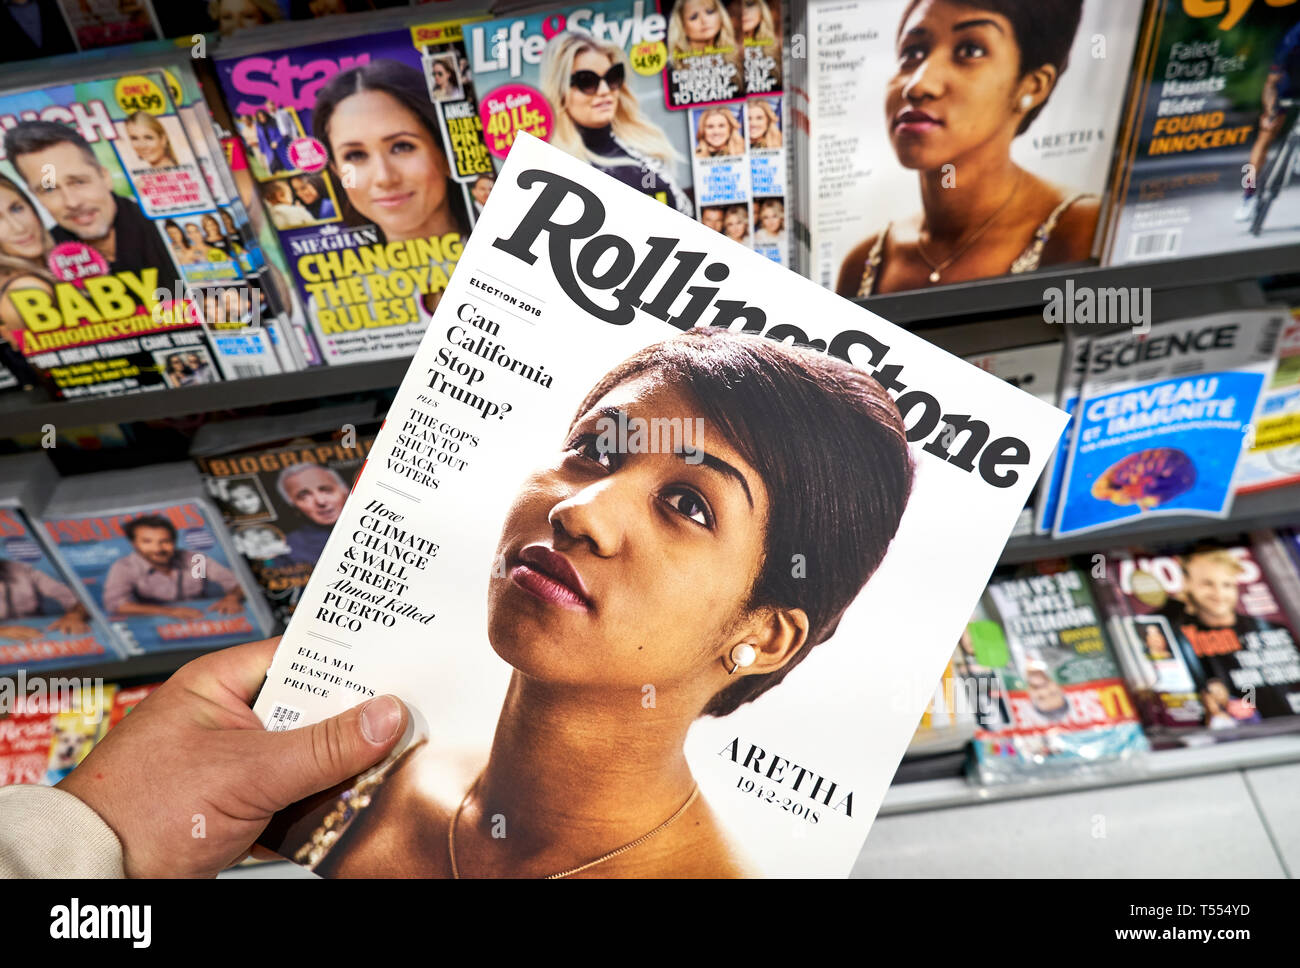 MONTREAL, CANADA - OCTOBER 9, 2018: Rolling Stone magazine in a hand over a stack of magazines with Aretha Franklin on the front cover. Rolling Stone  - Stock Image